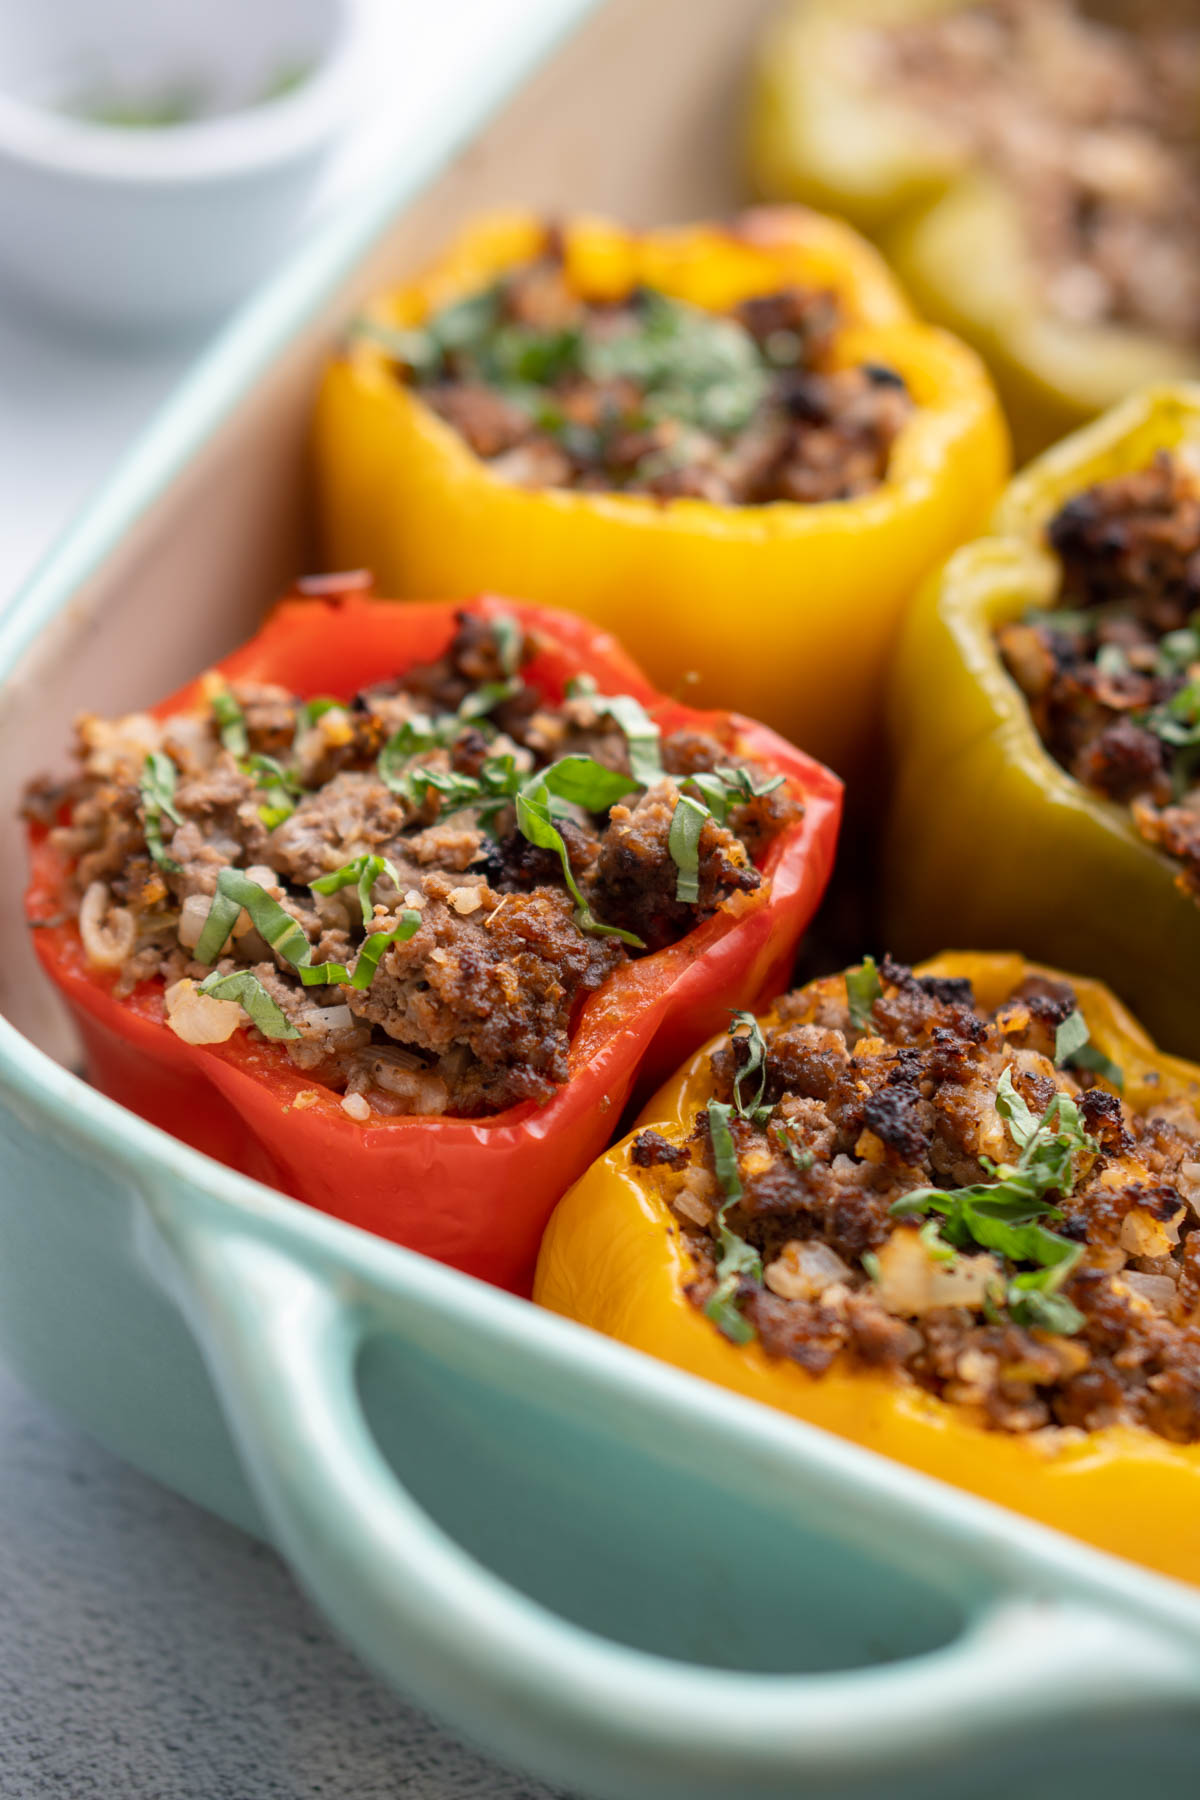 Bell peppers stuffed with ground beef mixture in casserole dish garnished with fresh basil.